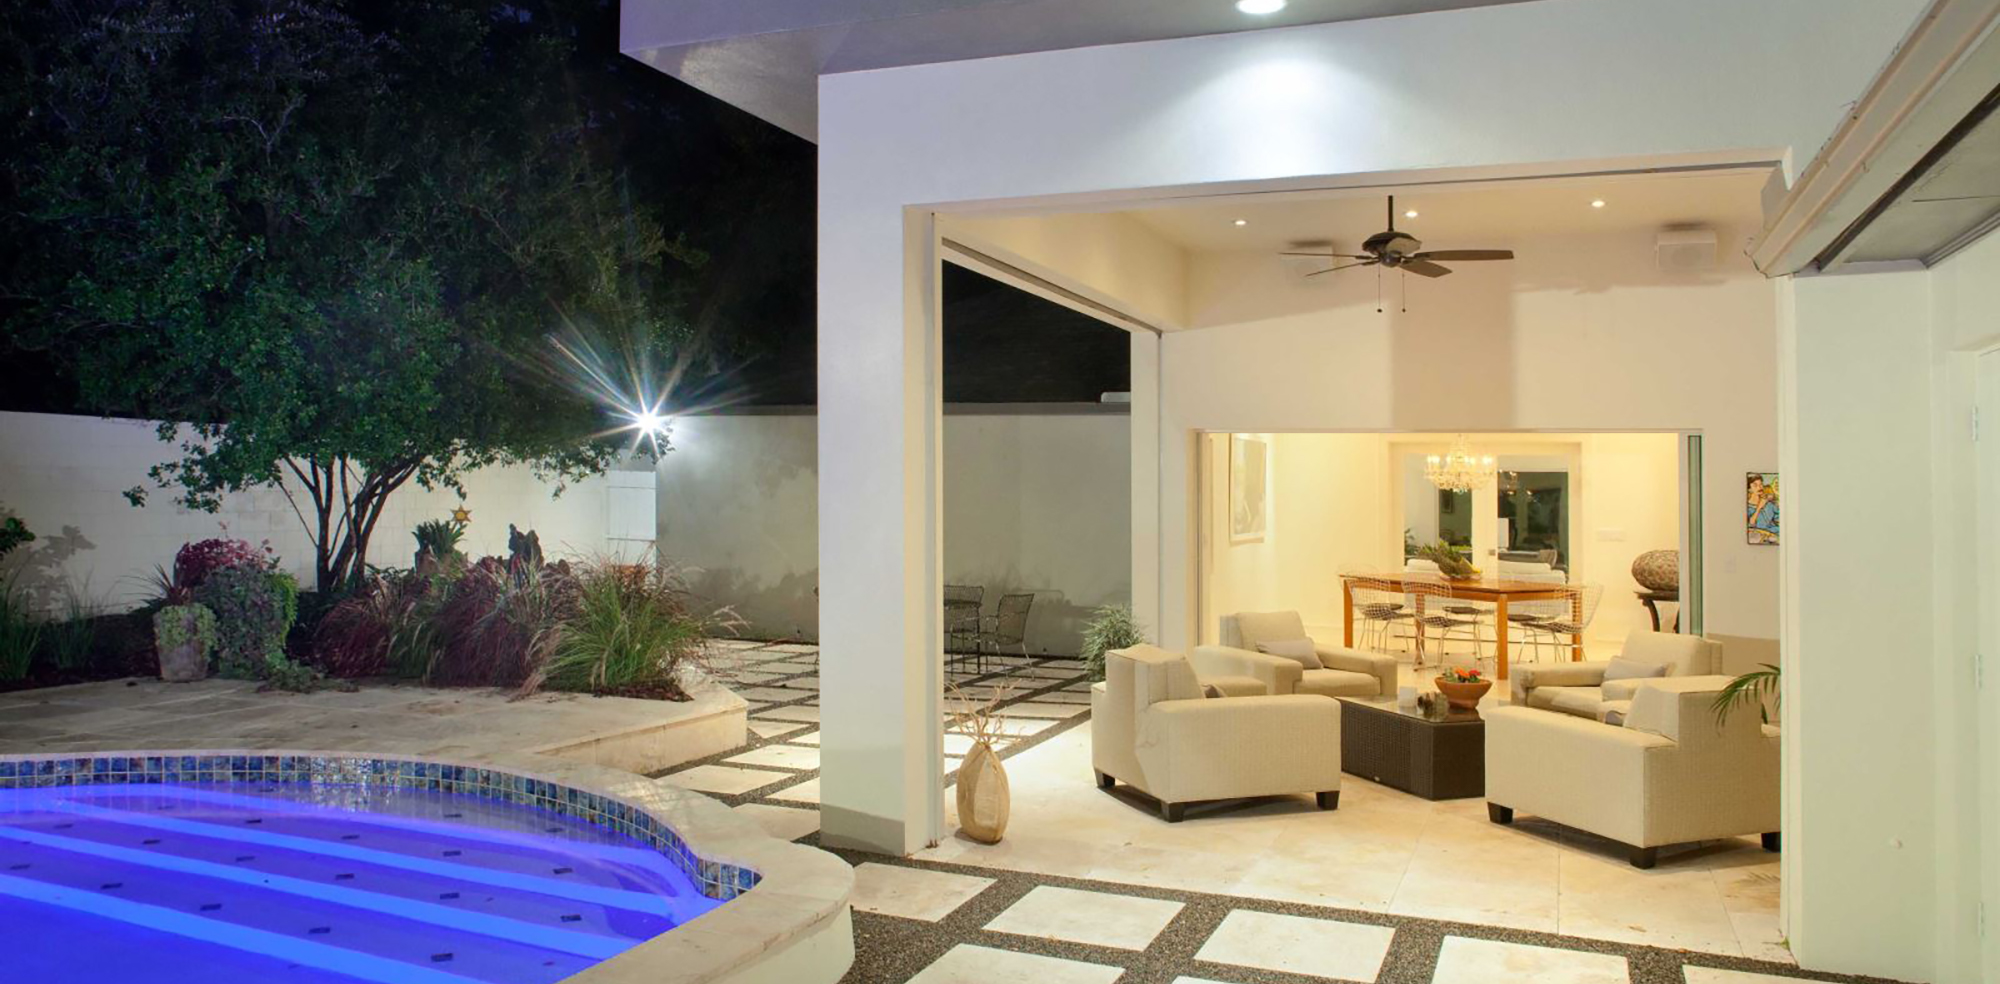 A photo of a residential backyard with pool, patio and lounge chairs